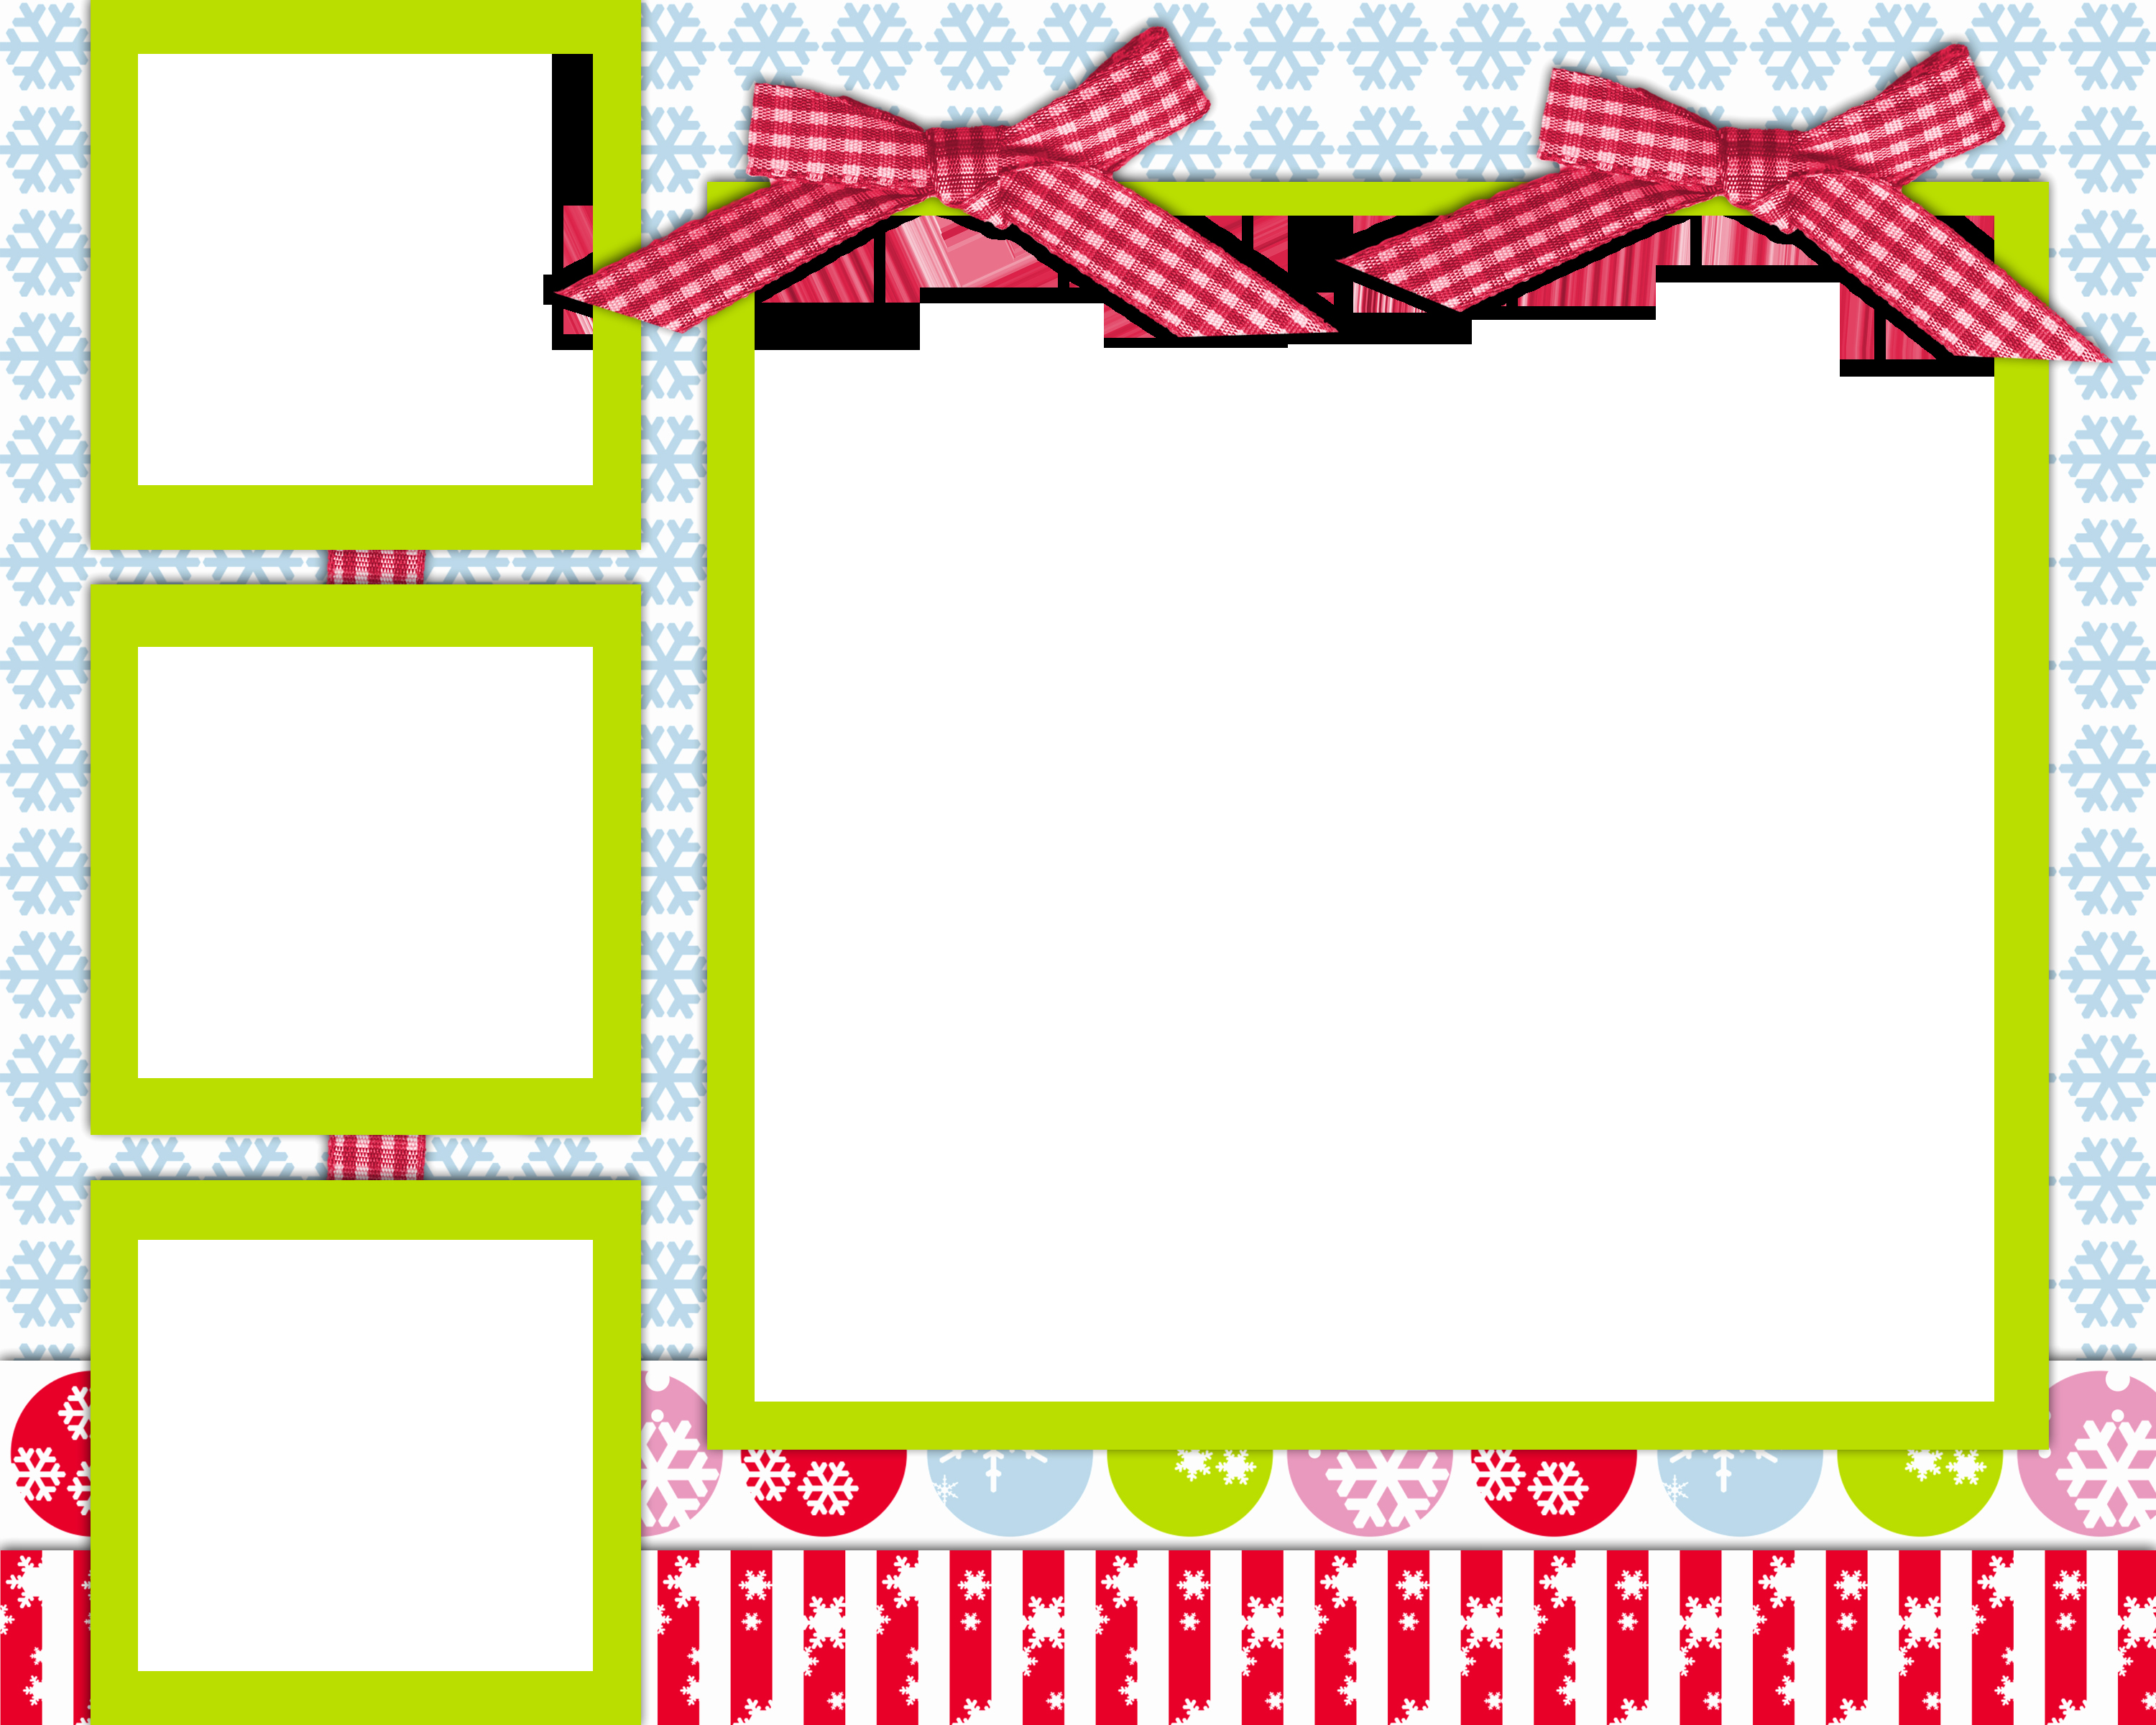 Picture Collage Template for Word Awesome Word Collage Templates theminecraftserver Best